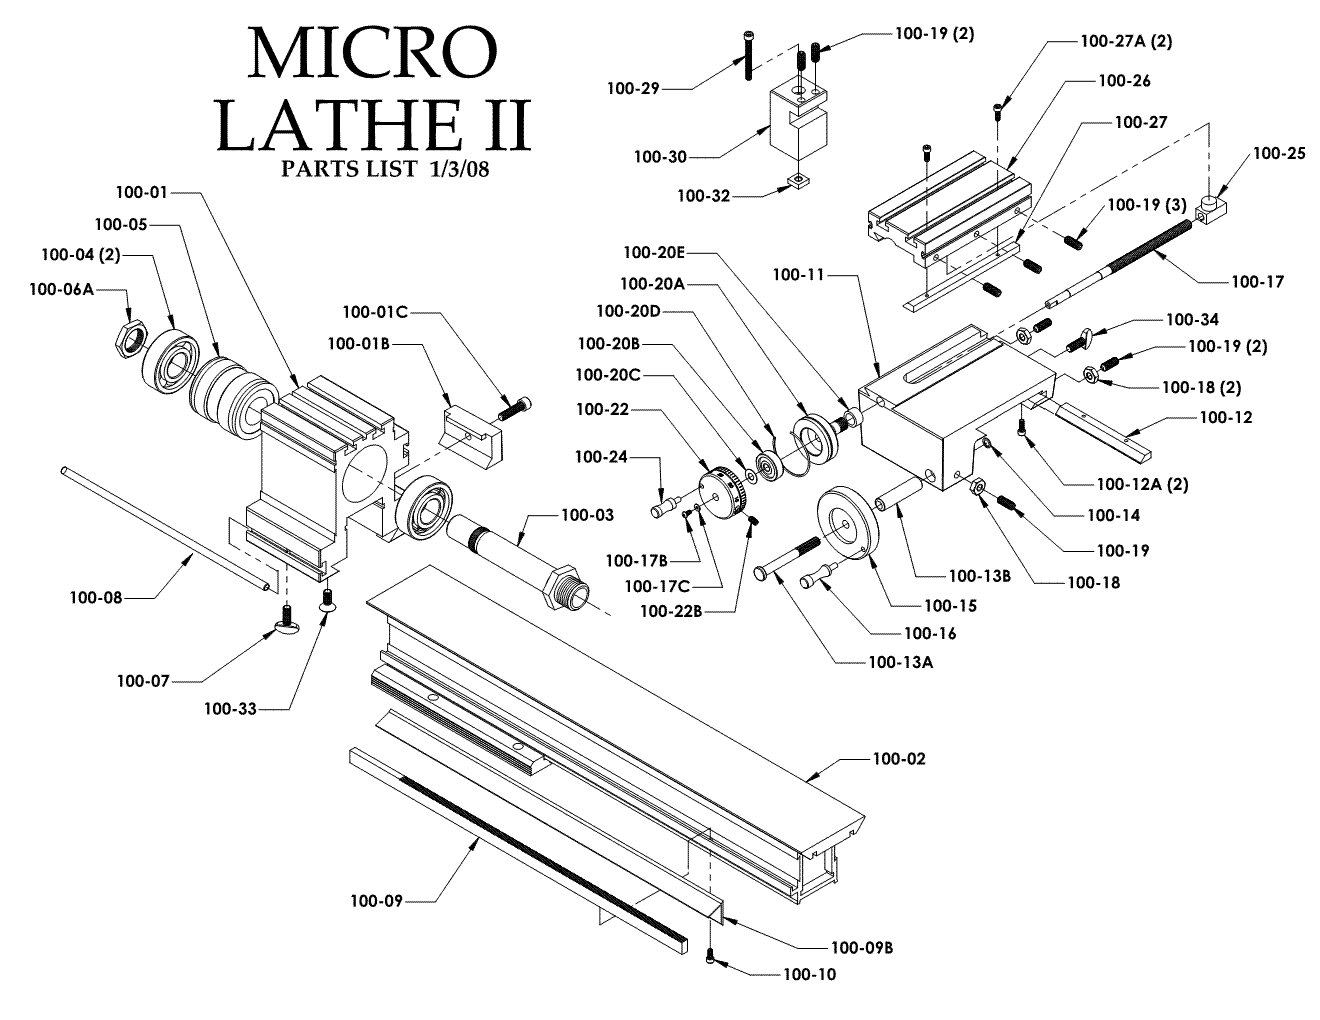 Taig Micro Lathe II Parts List